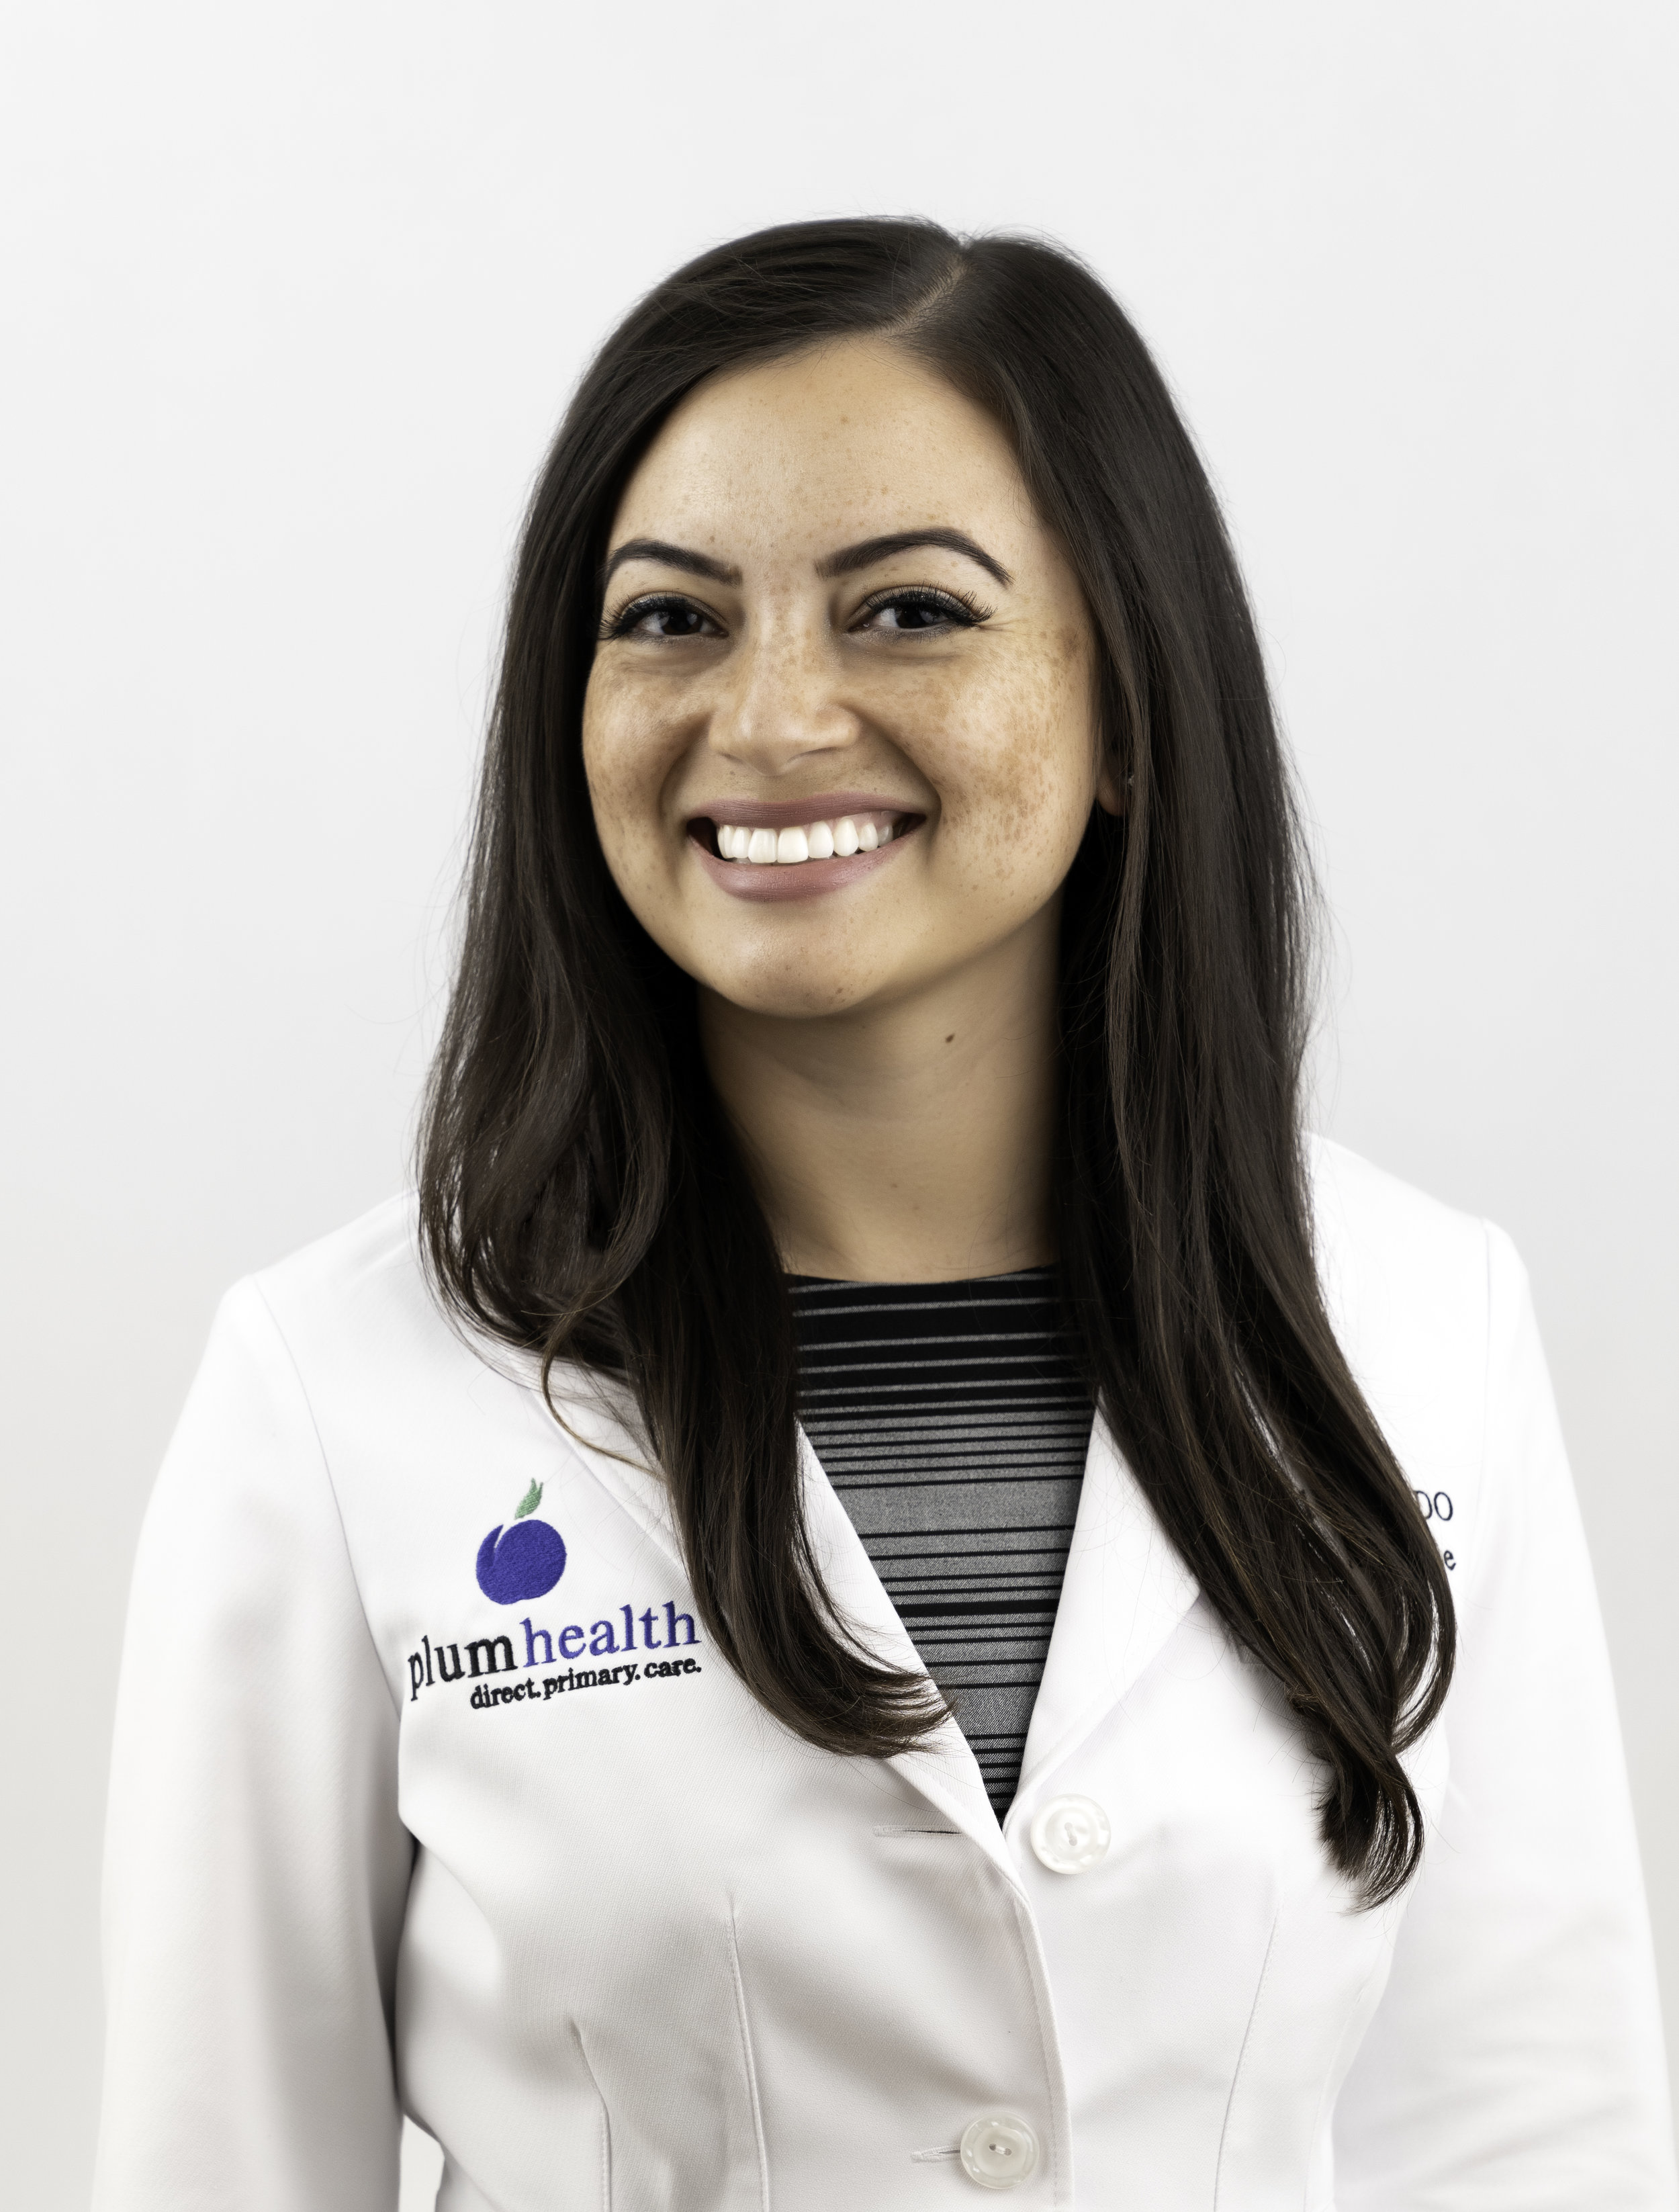 Dr. Raquel Orlich, DO, a Family Medicine Doctor with Plum Health DPC.